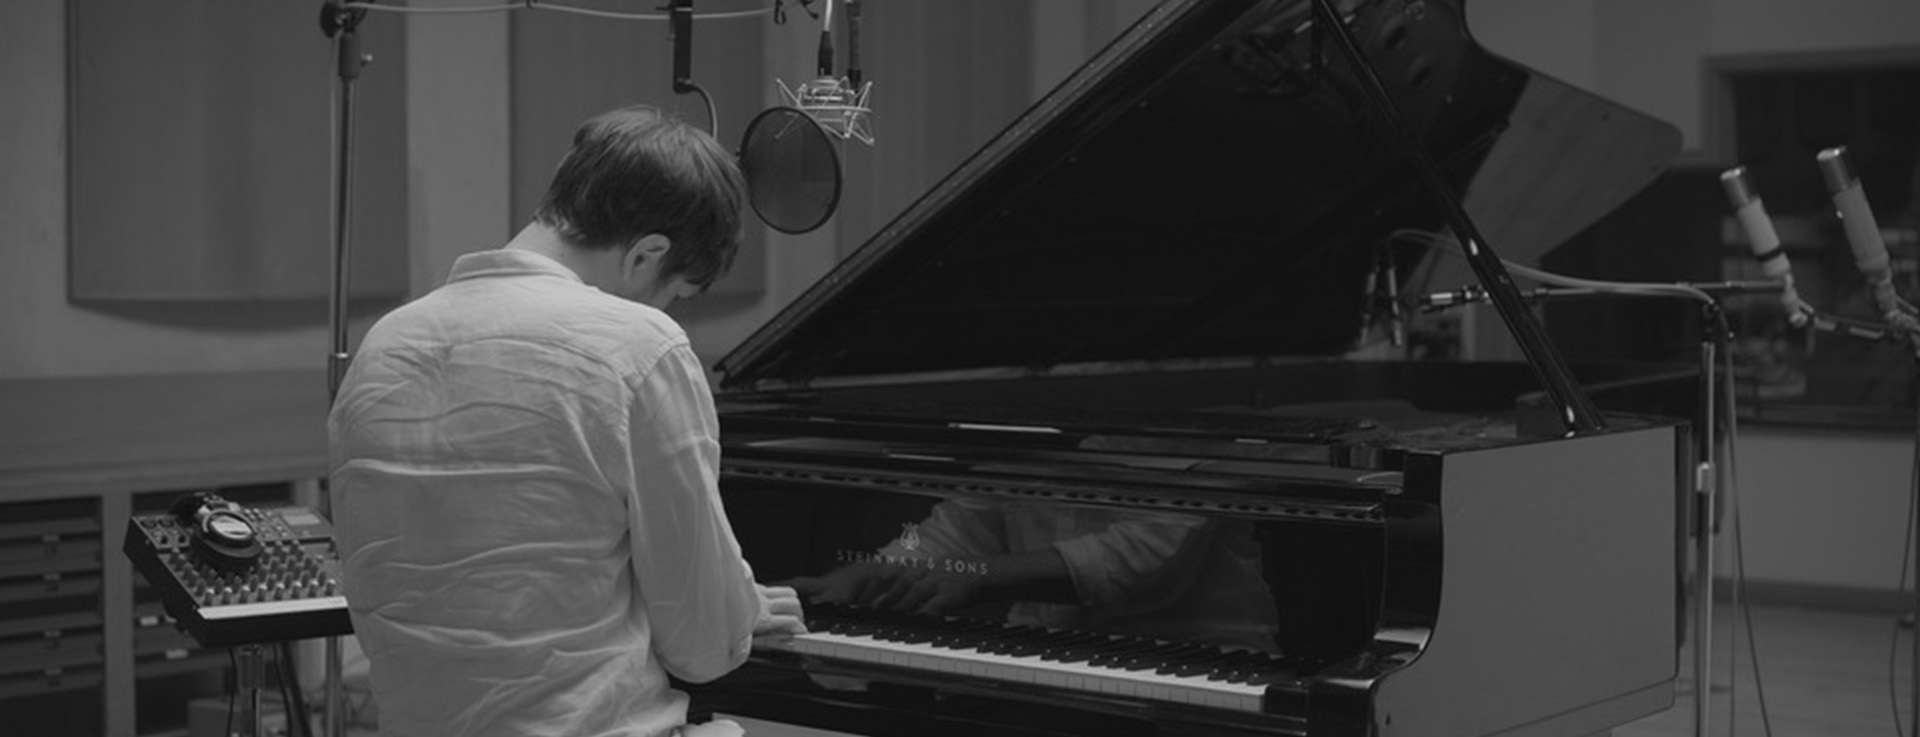 "James Blake ""Vincent"" by Andrew Douglas"